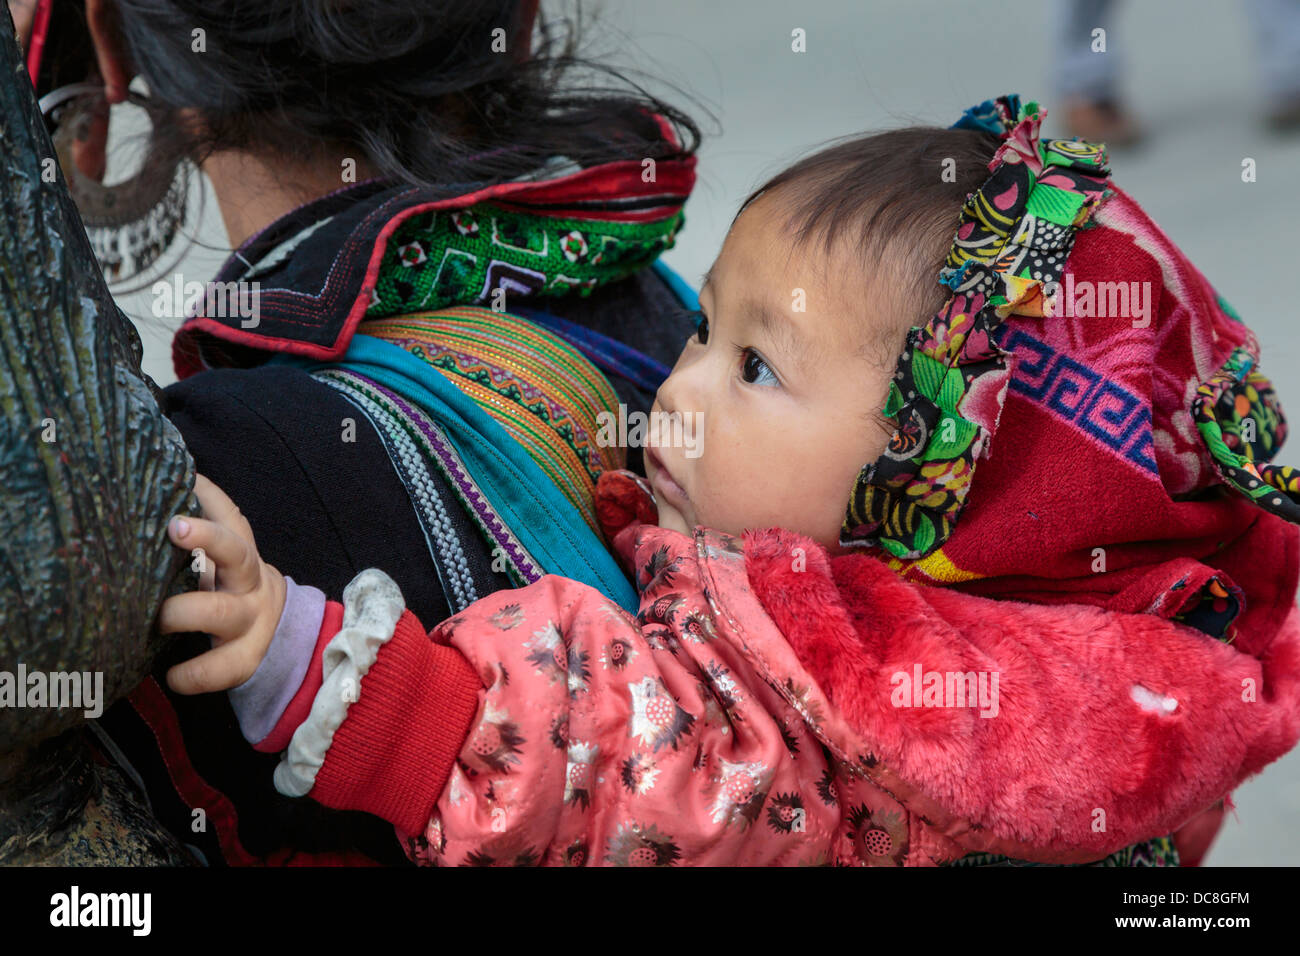 A young mother carrying her baby in Sapa, Vietnam, Asia. - Stock Image